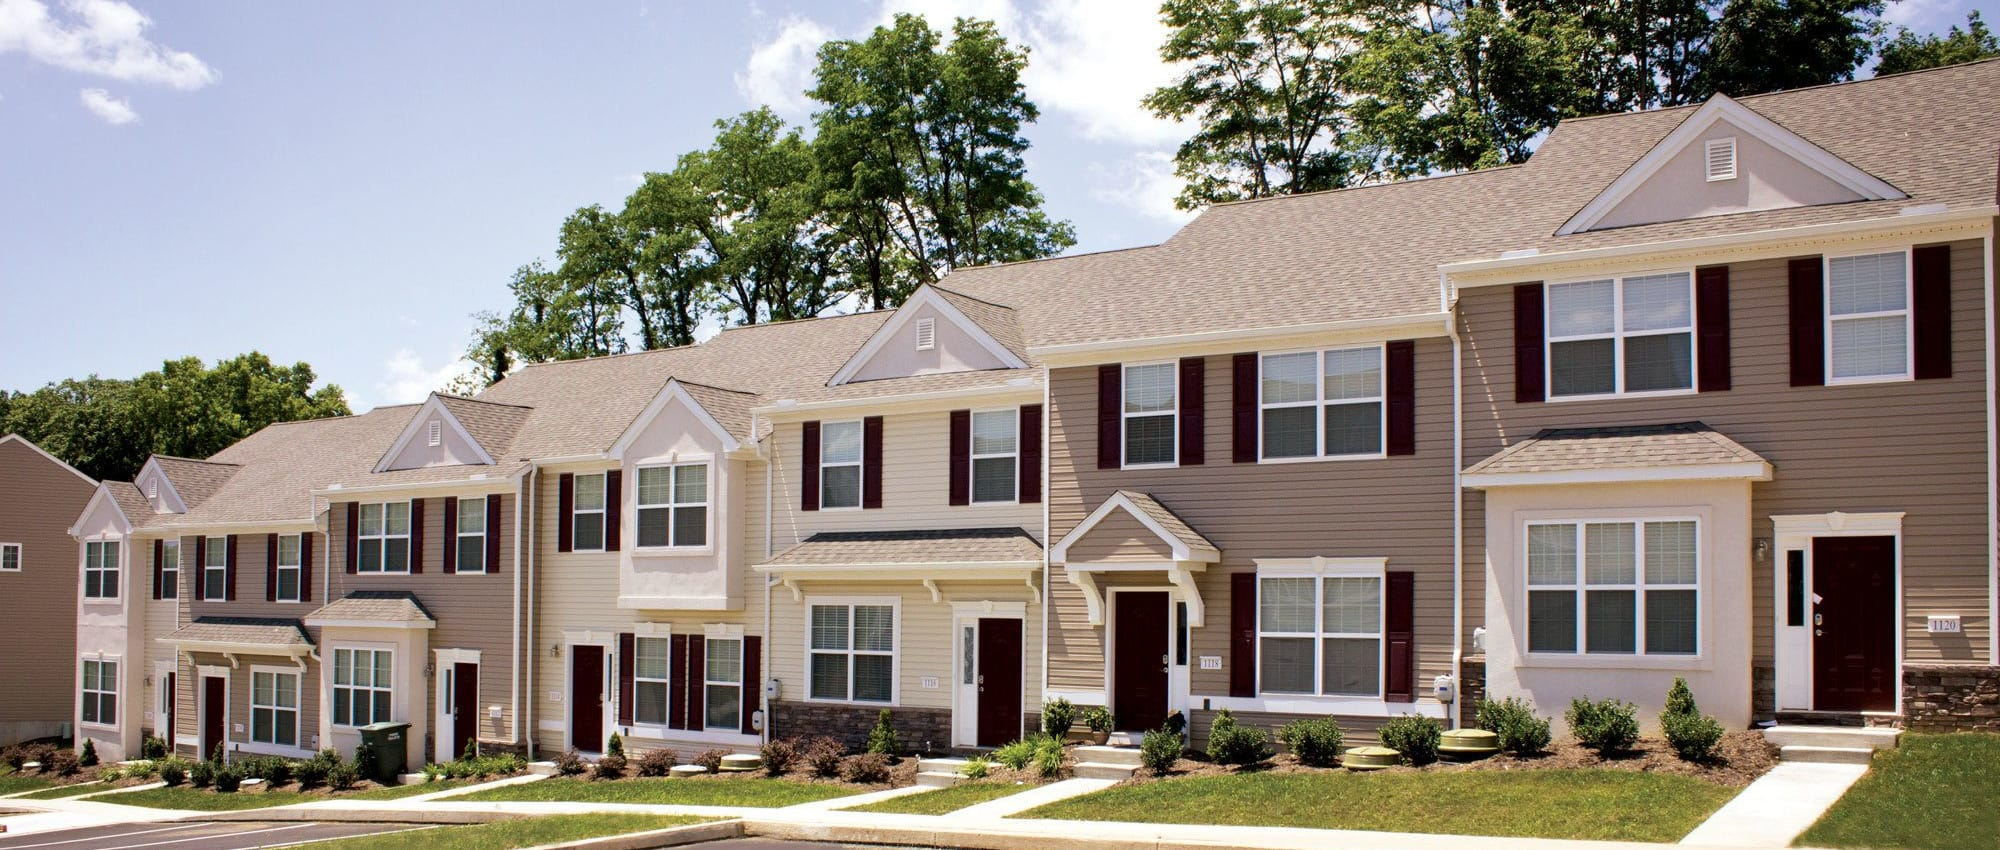 Apartments at Emerald Pointe Townhomes  in Harrisburg, Pennsylvania